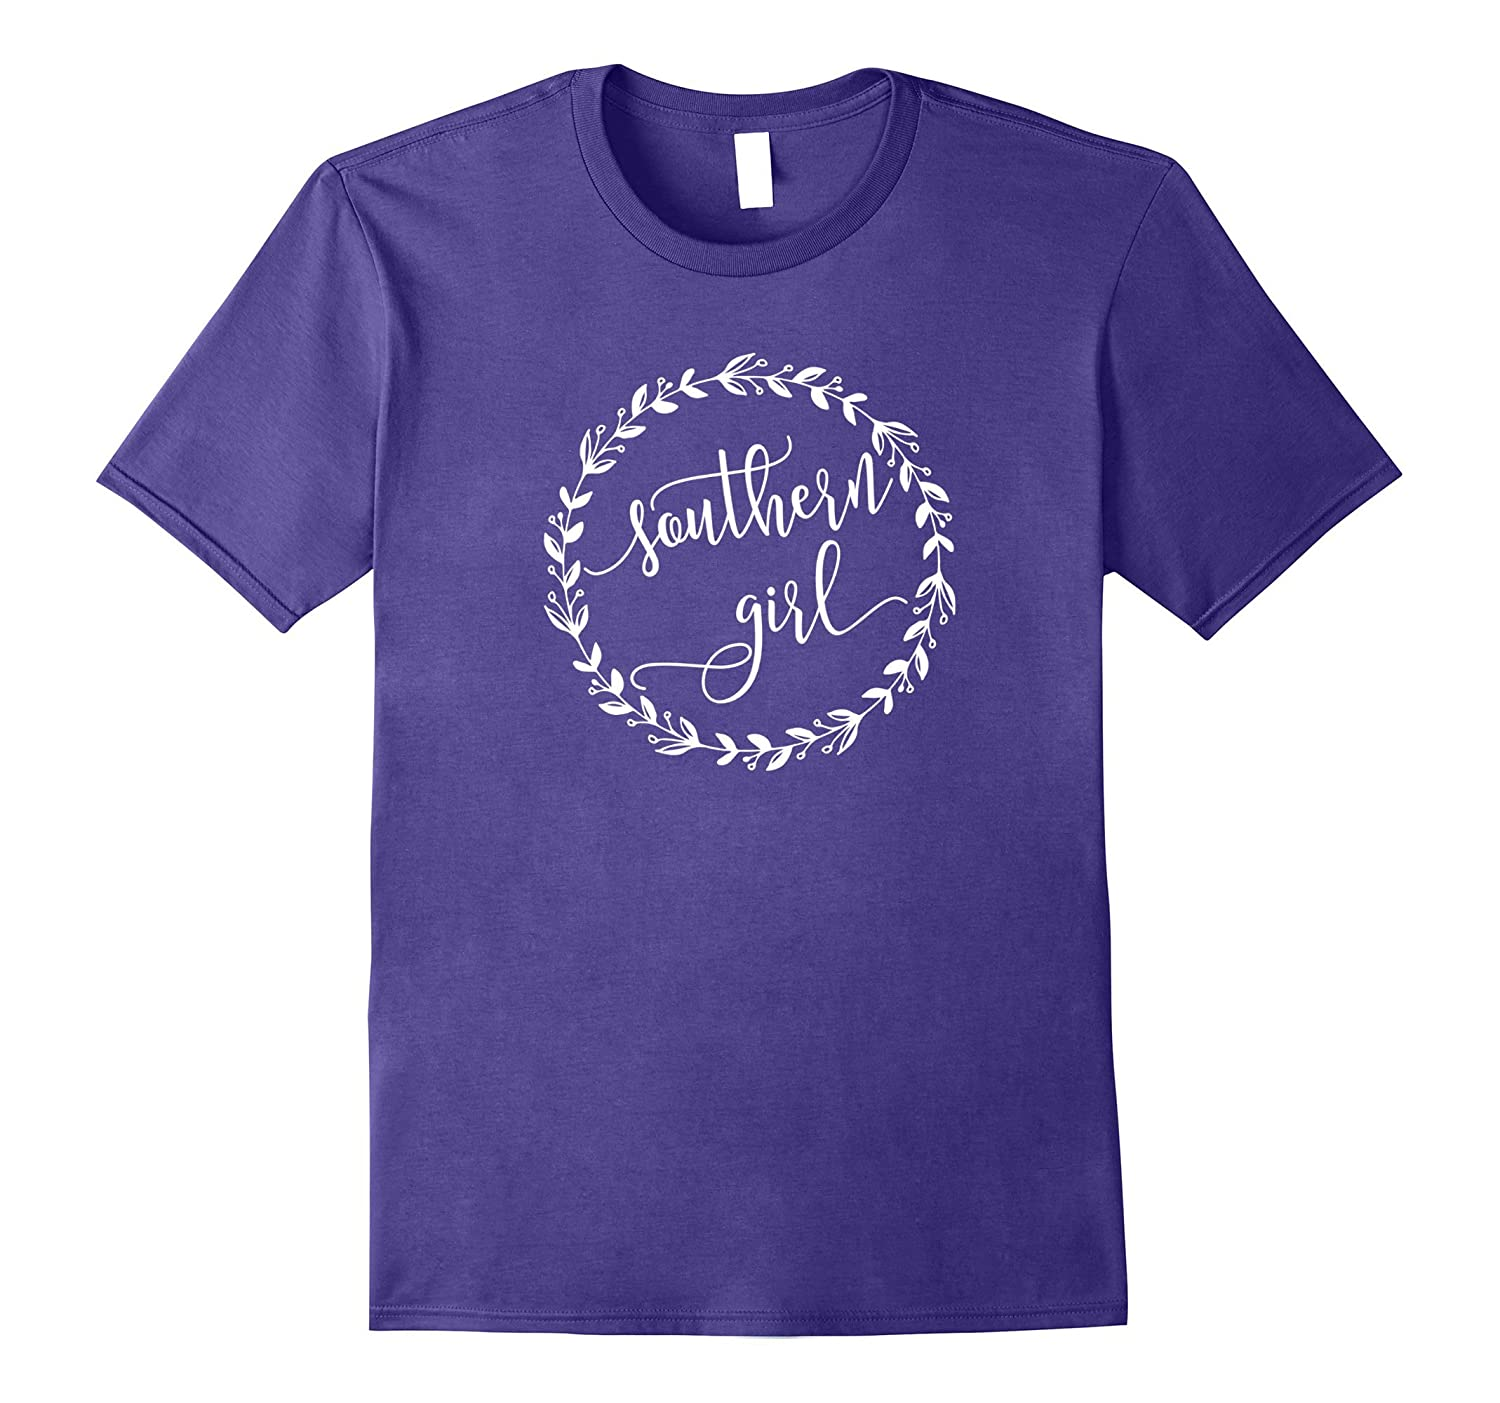 Southern Girl T Shirt with Wreath and Script Font-Vaci